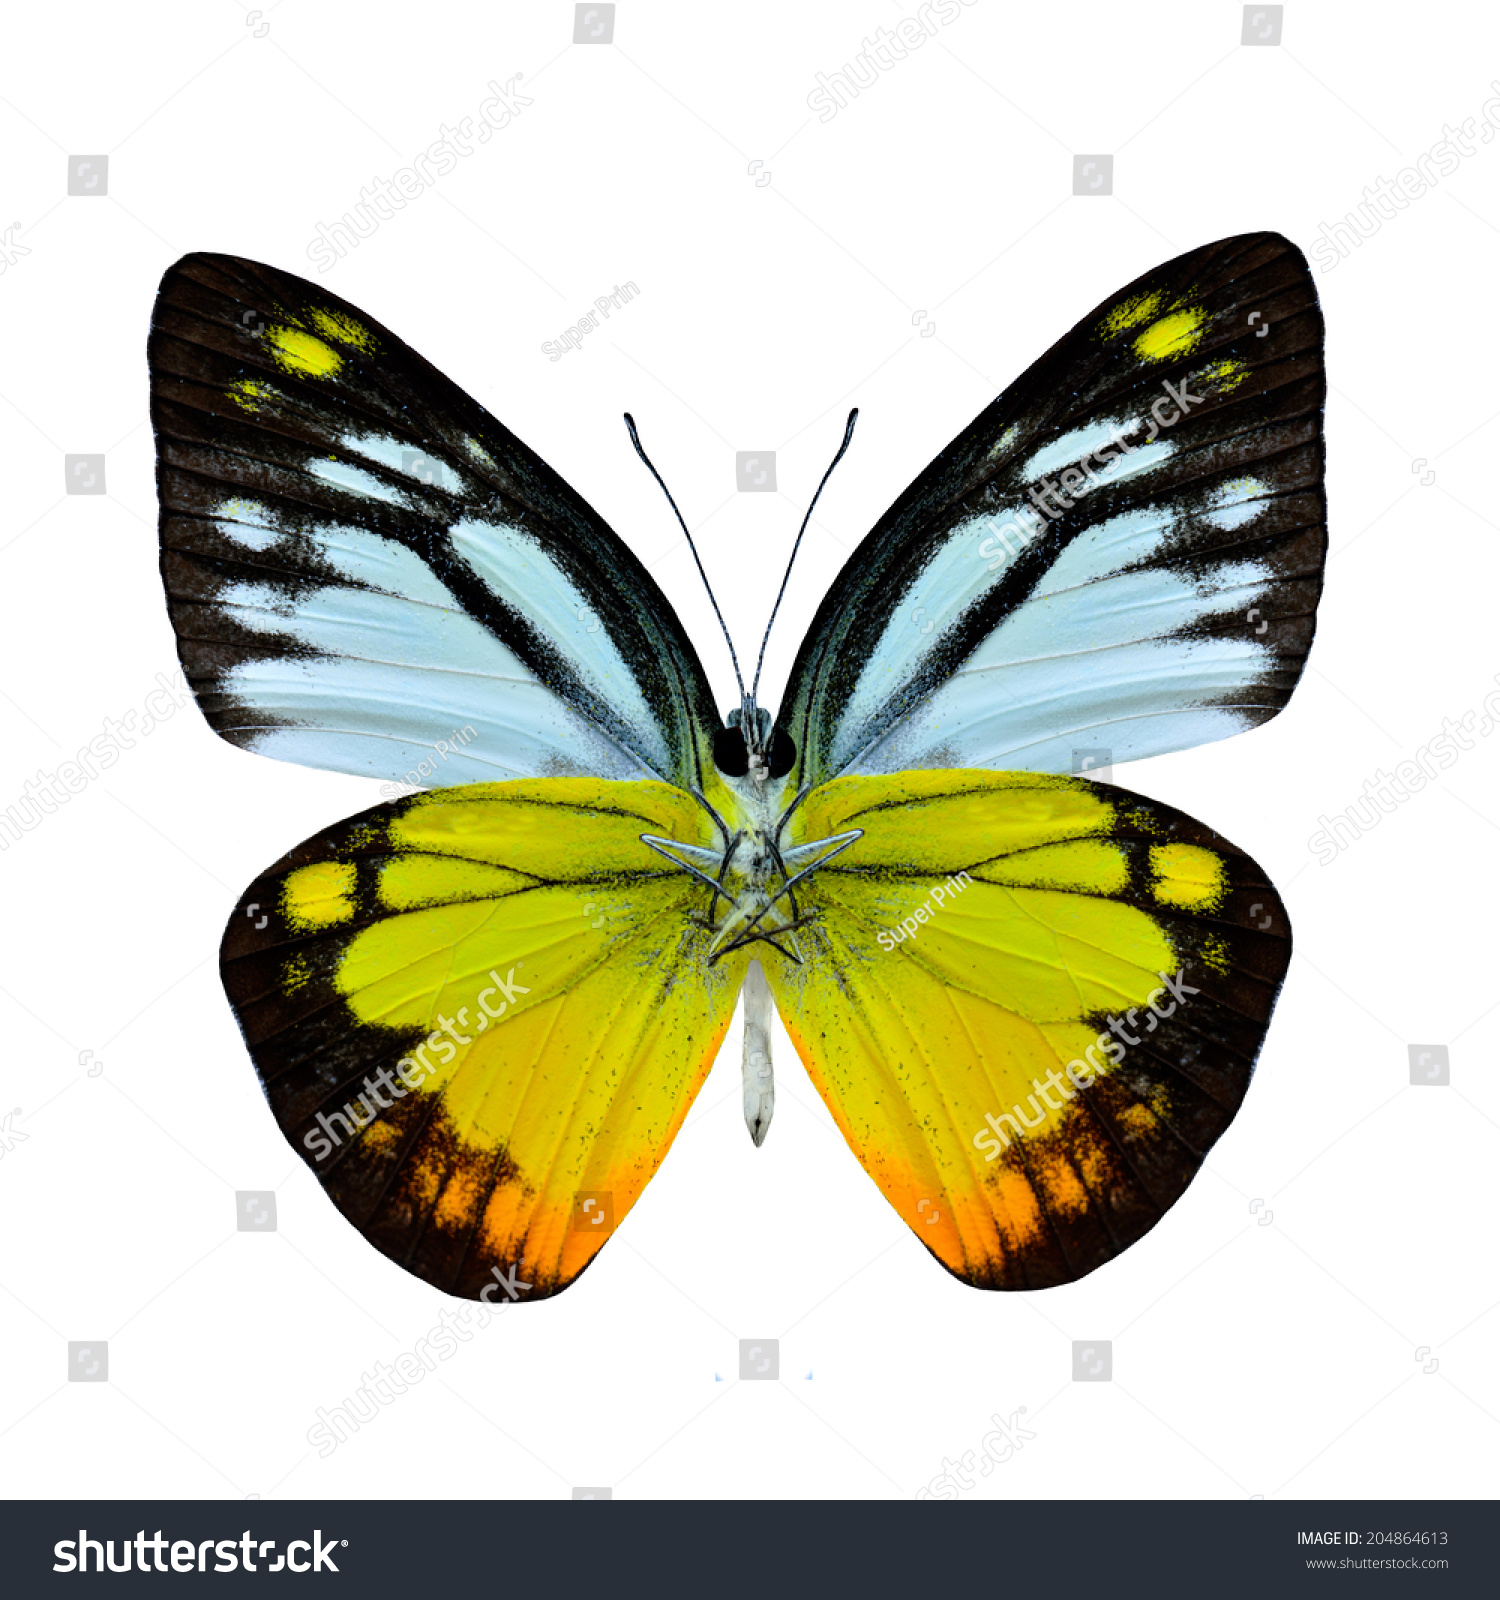 butterfly on yellow color - photo #12